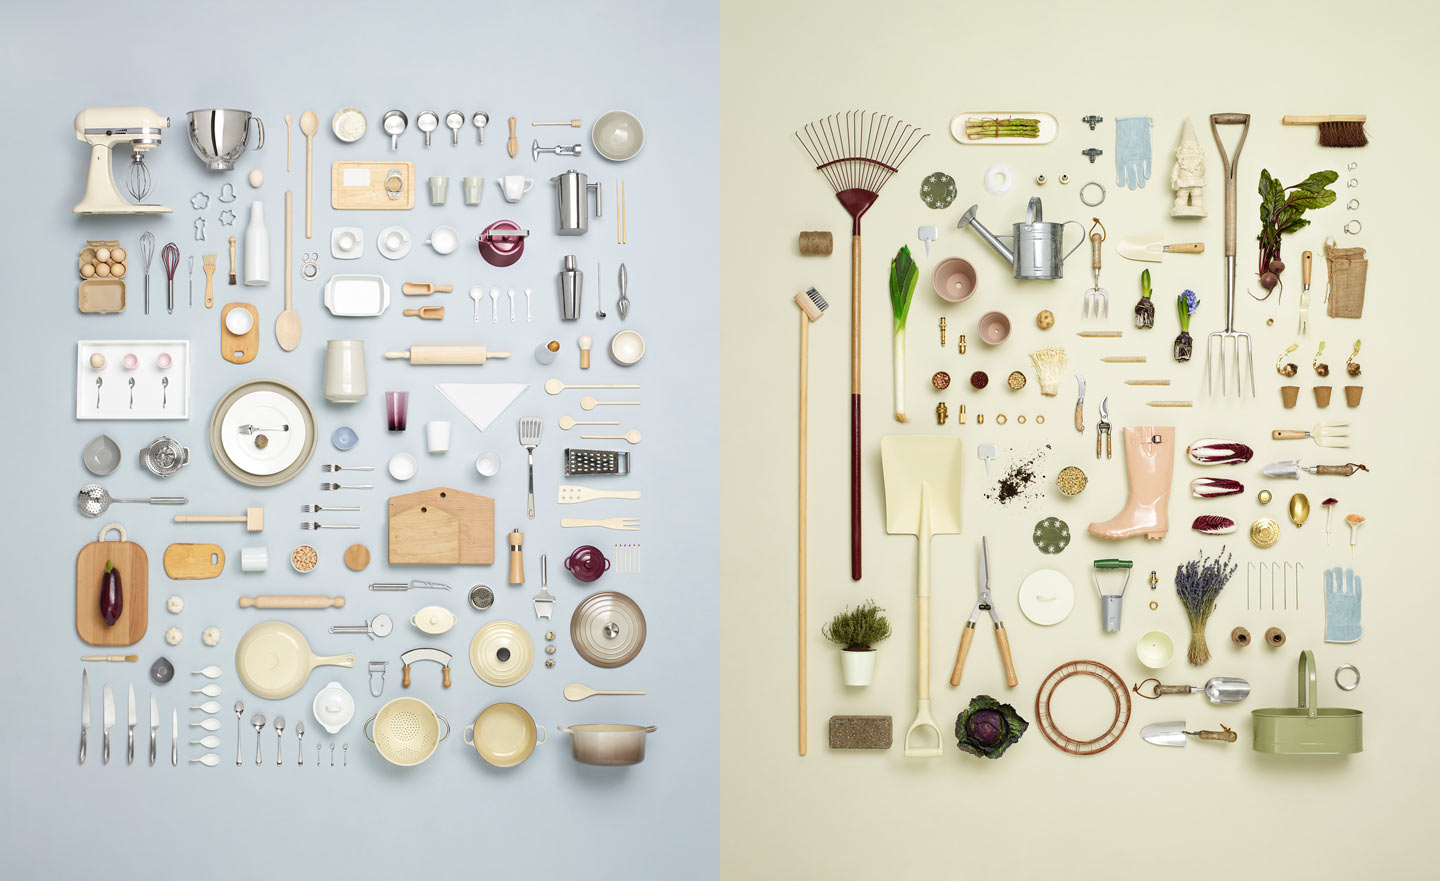 The Dissected Photography of Todd McLellan